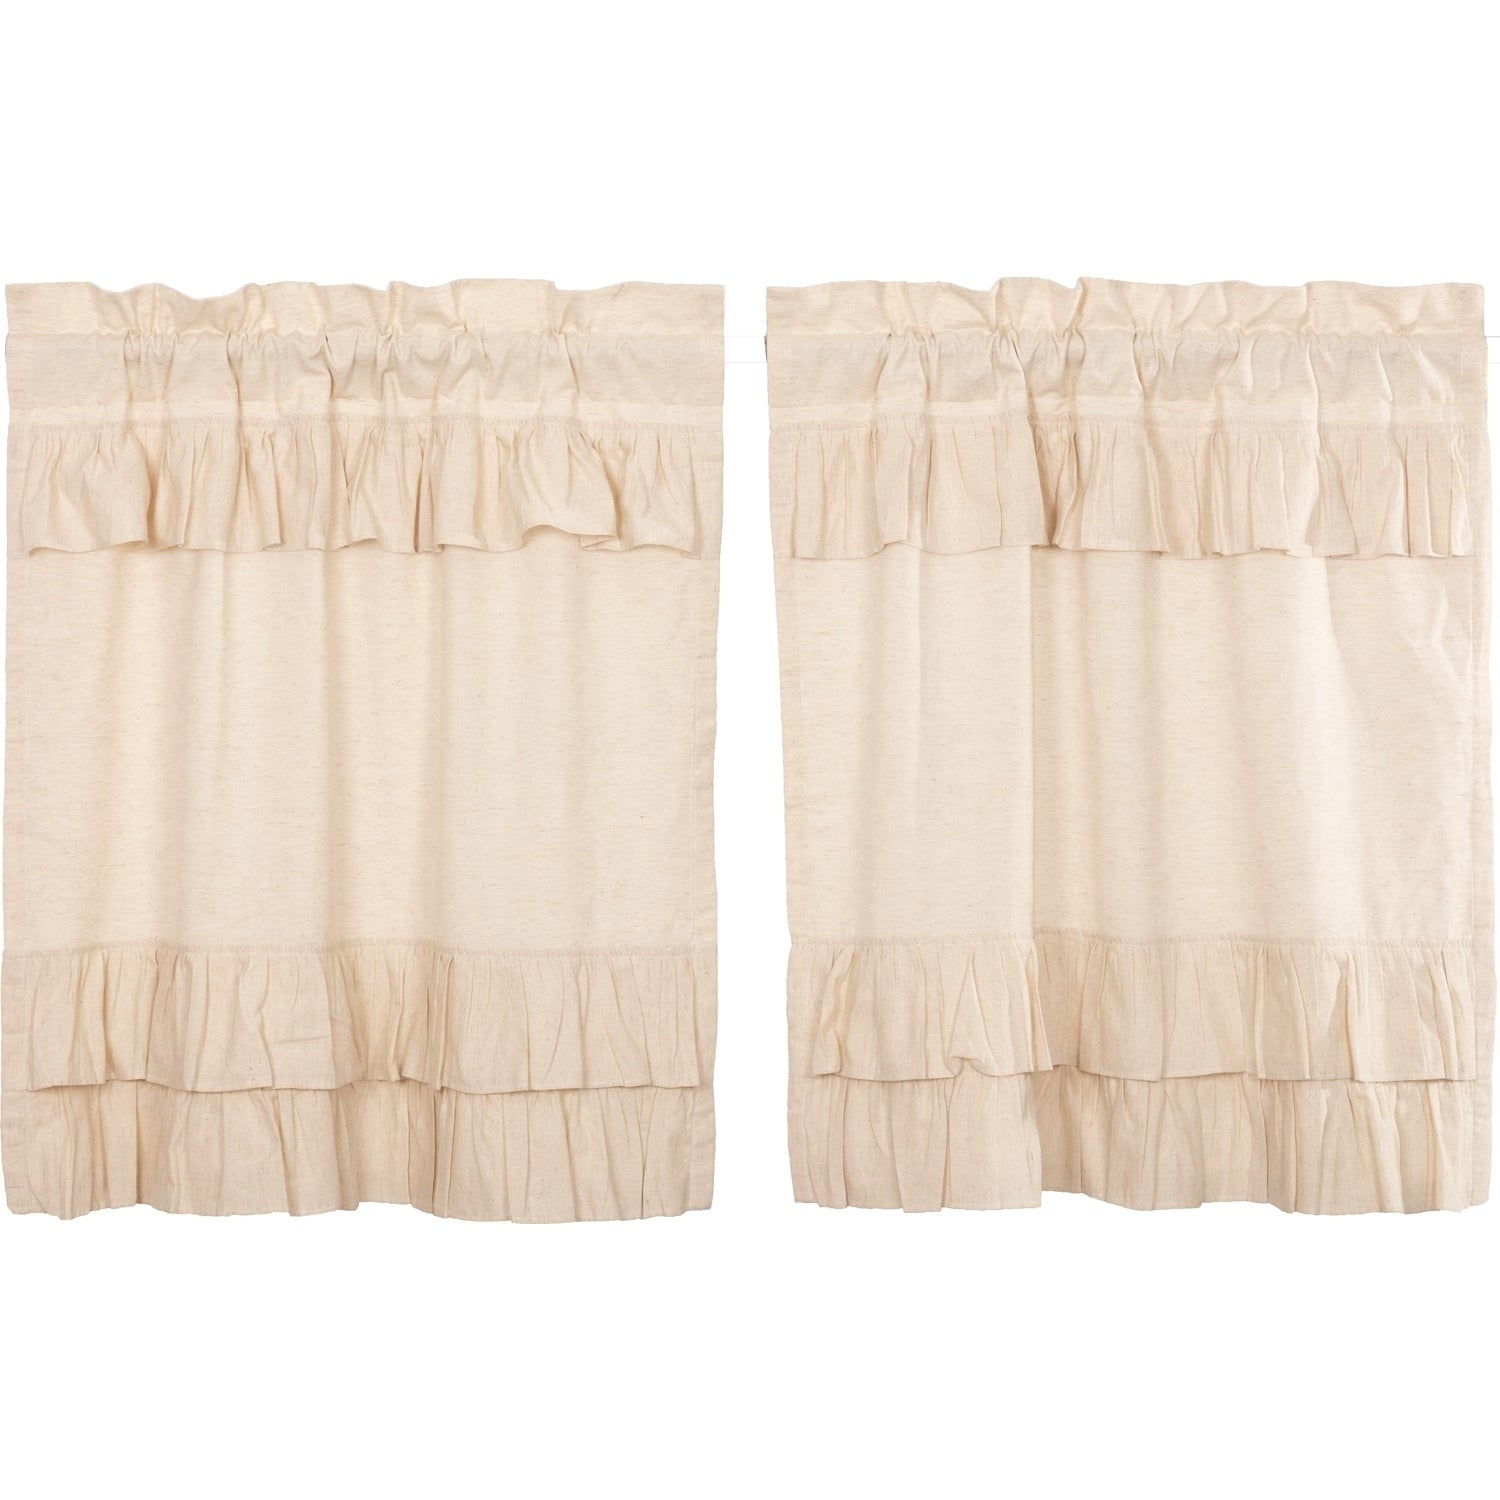 Farmhouse Kitchen Curtains Vhc Simple Life Flax Tier Pair Rod Pocket Cotton Linen Blend Solid Color Flax Intended For Simple Life Flax Tier Pairs (View 9 of 20)